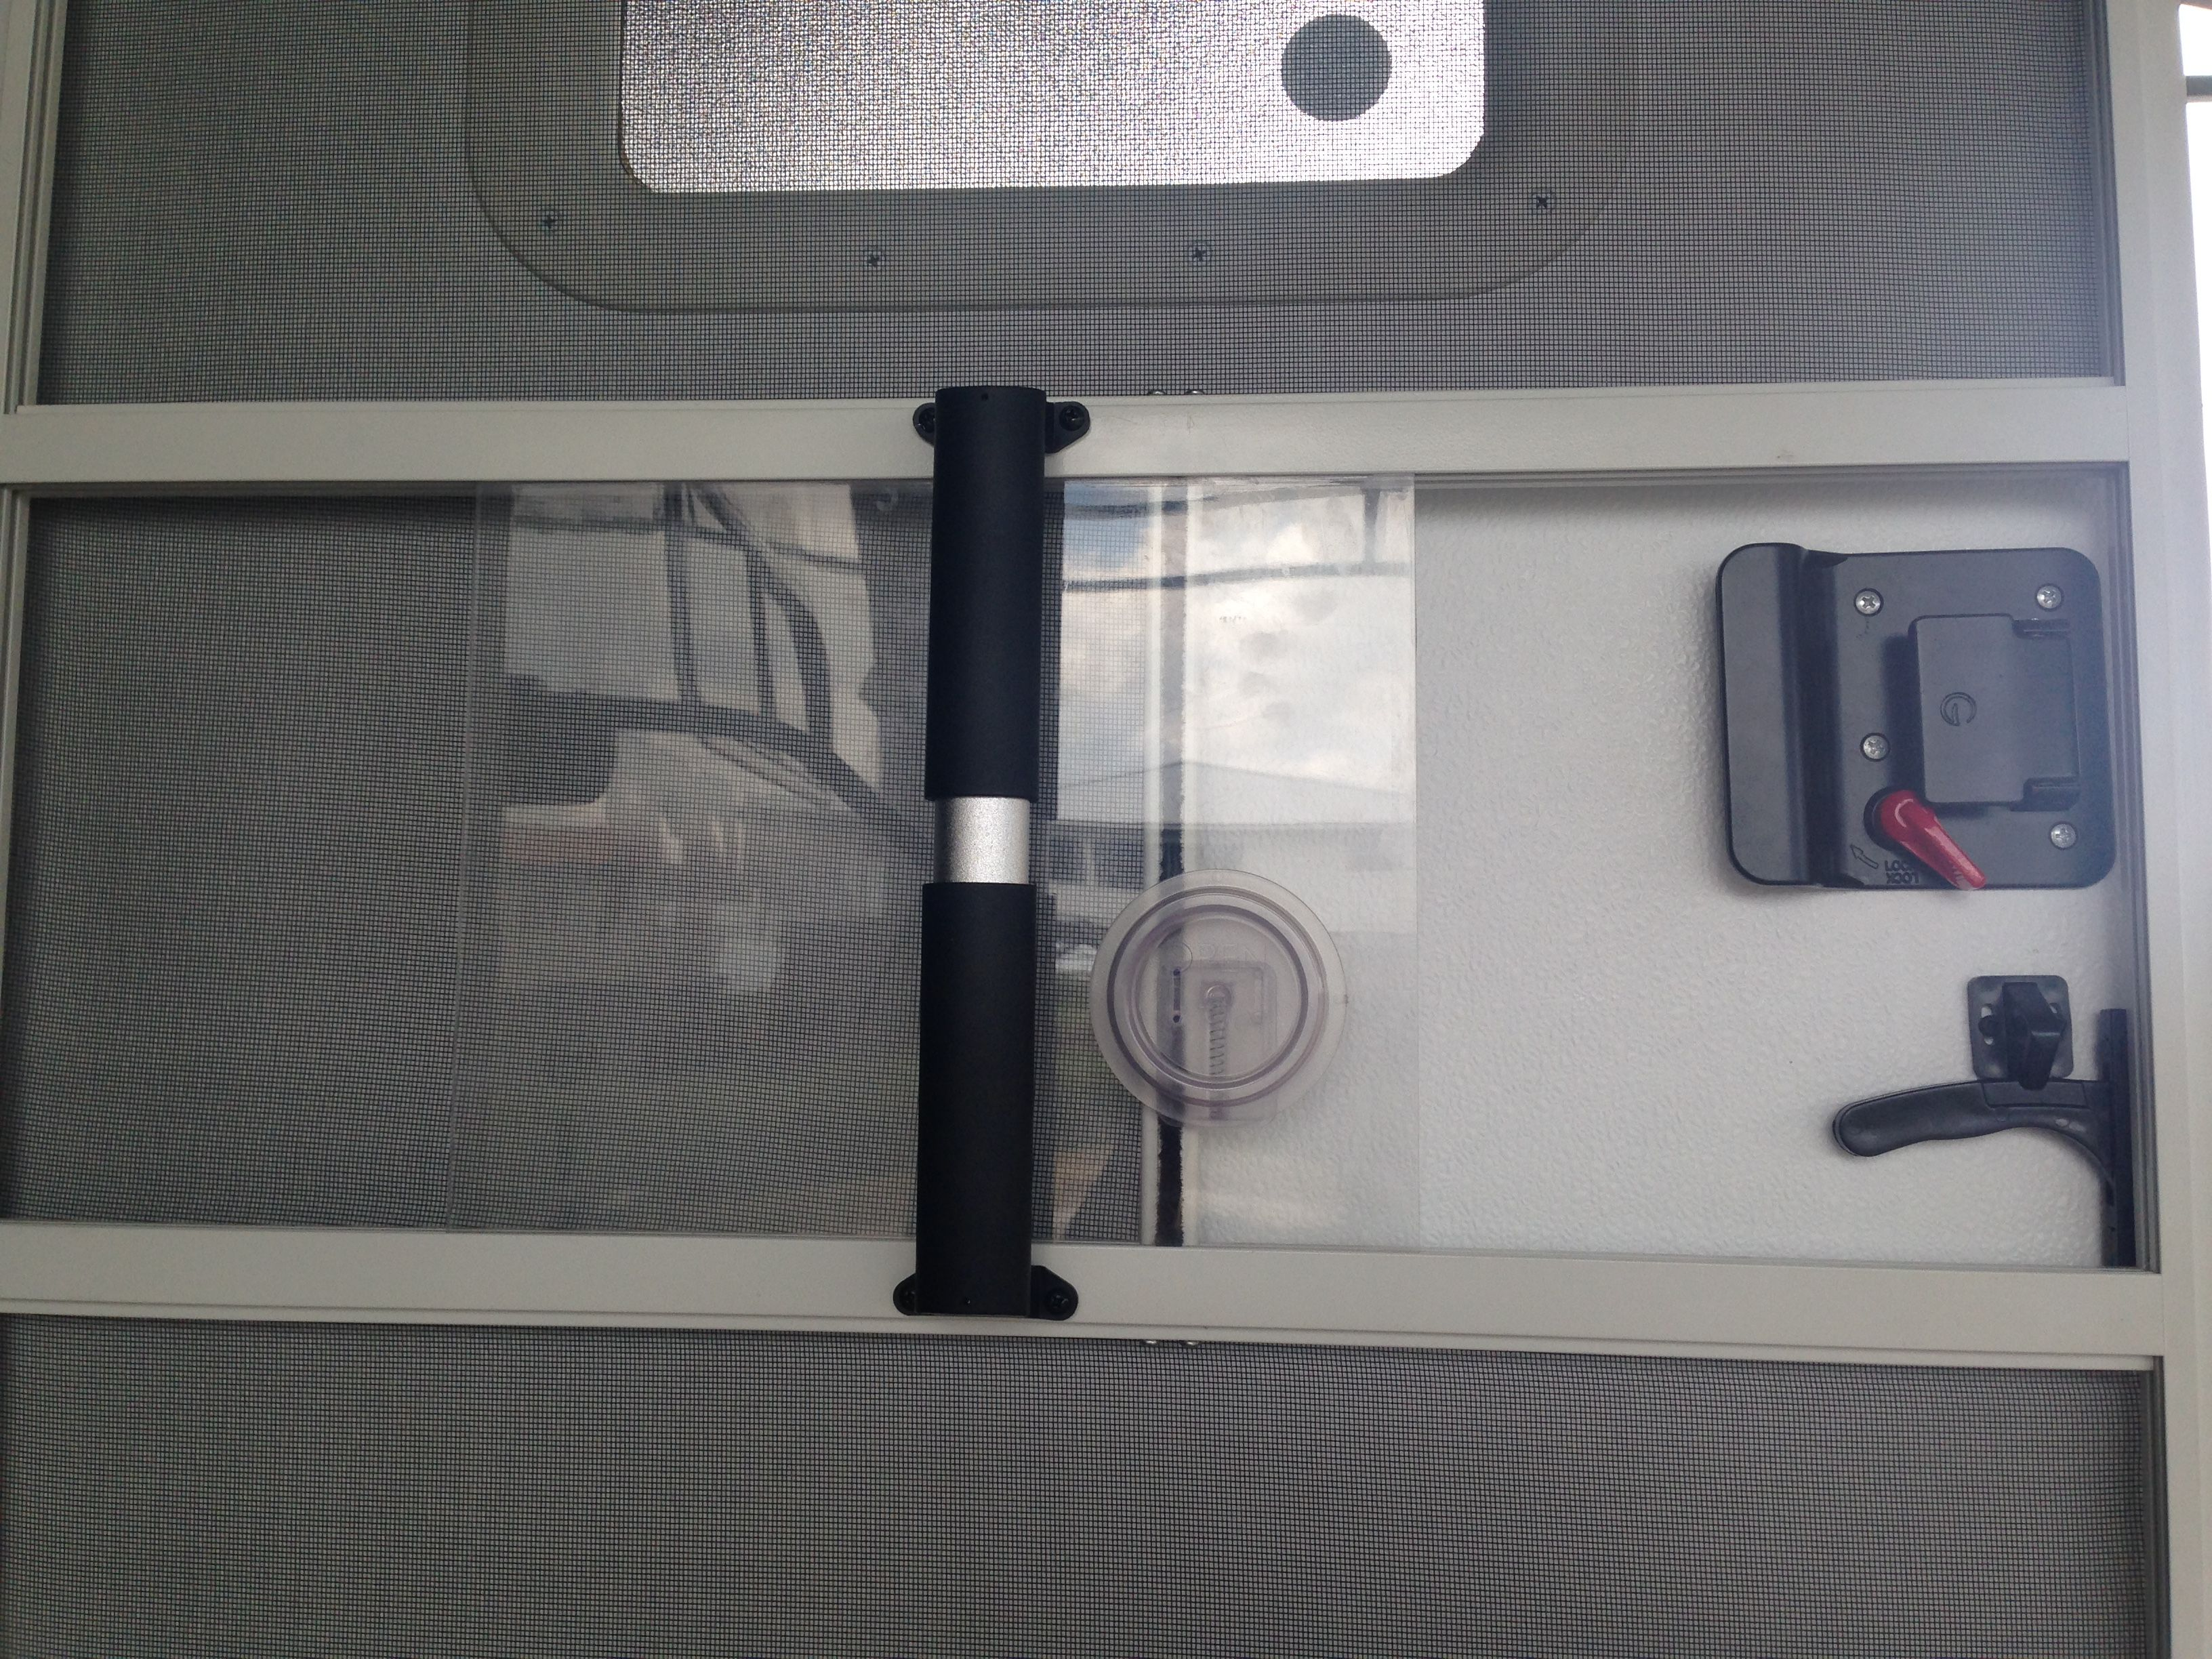 Rv Screen Door Handle Modification Longer One Purchased At Camping